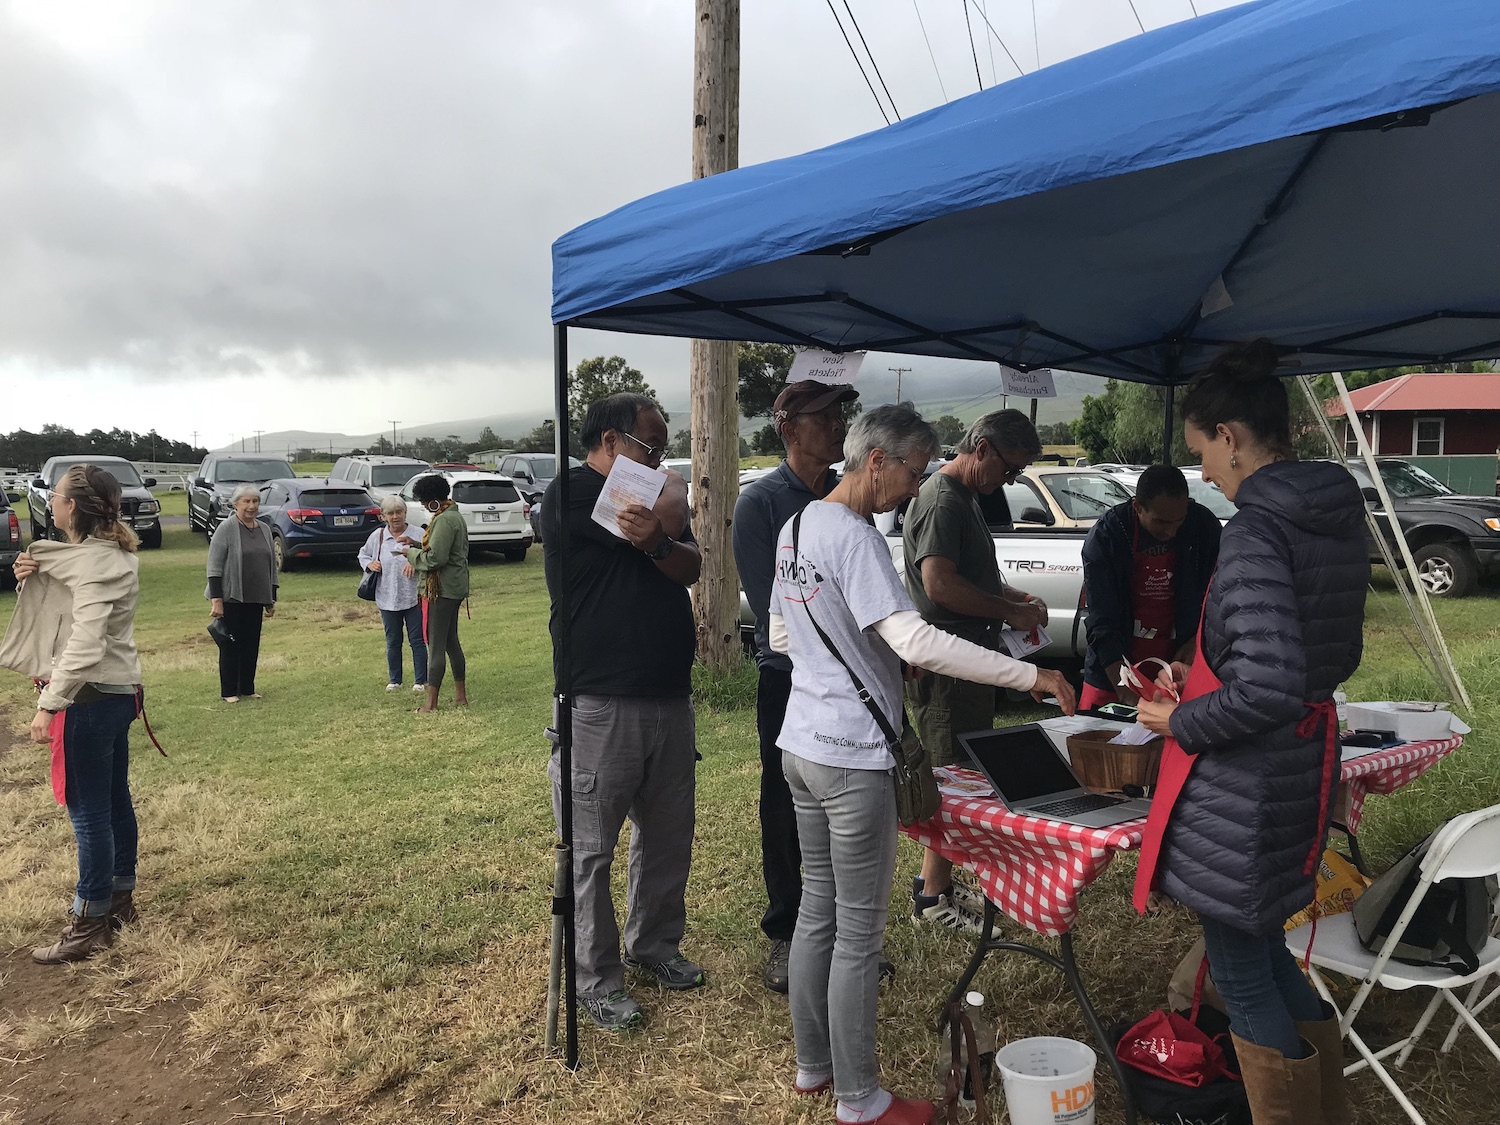 2nd Annual Firefighter Chili Cookoff for Wildfire Prevention_11_3_2018_5 copy.JPG